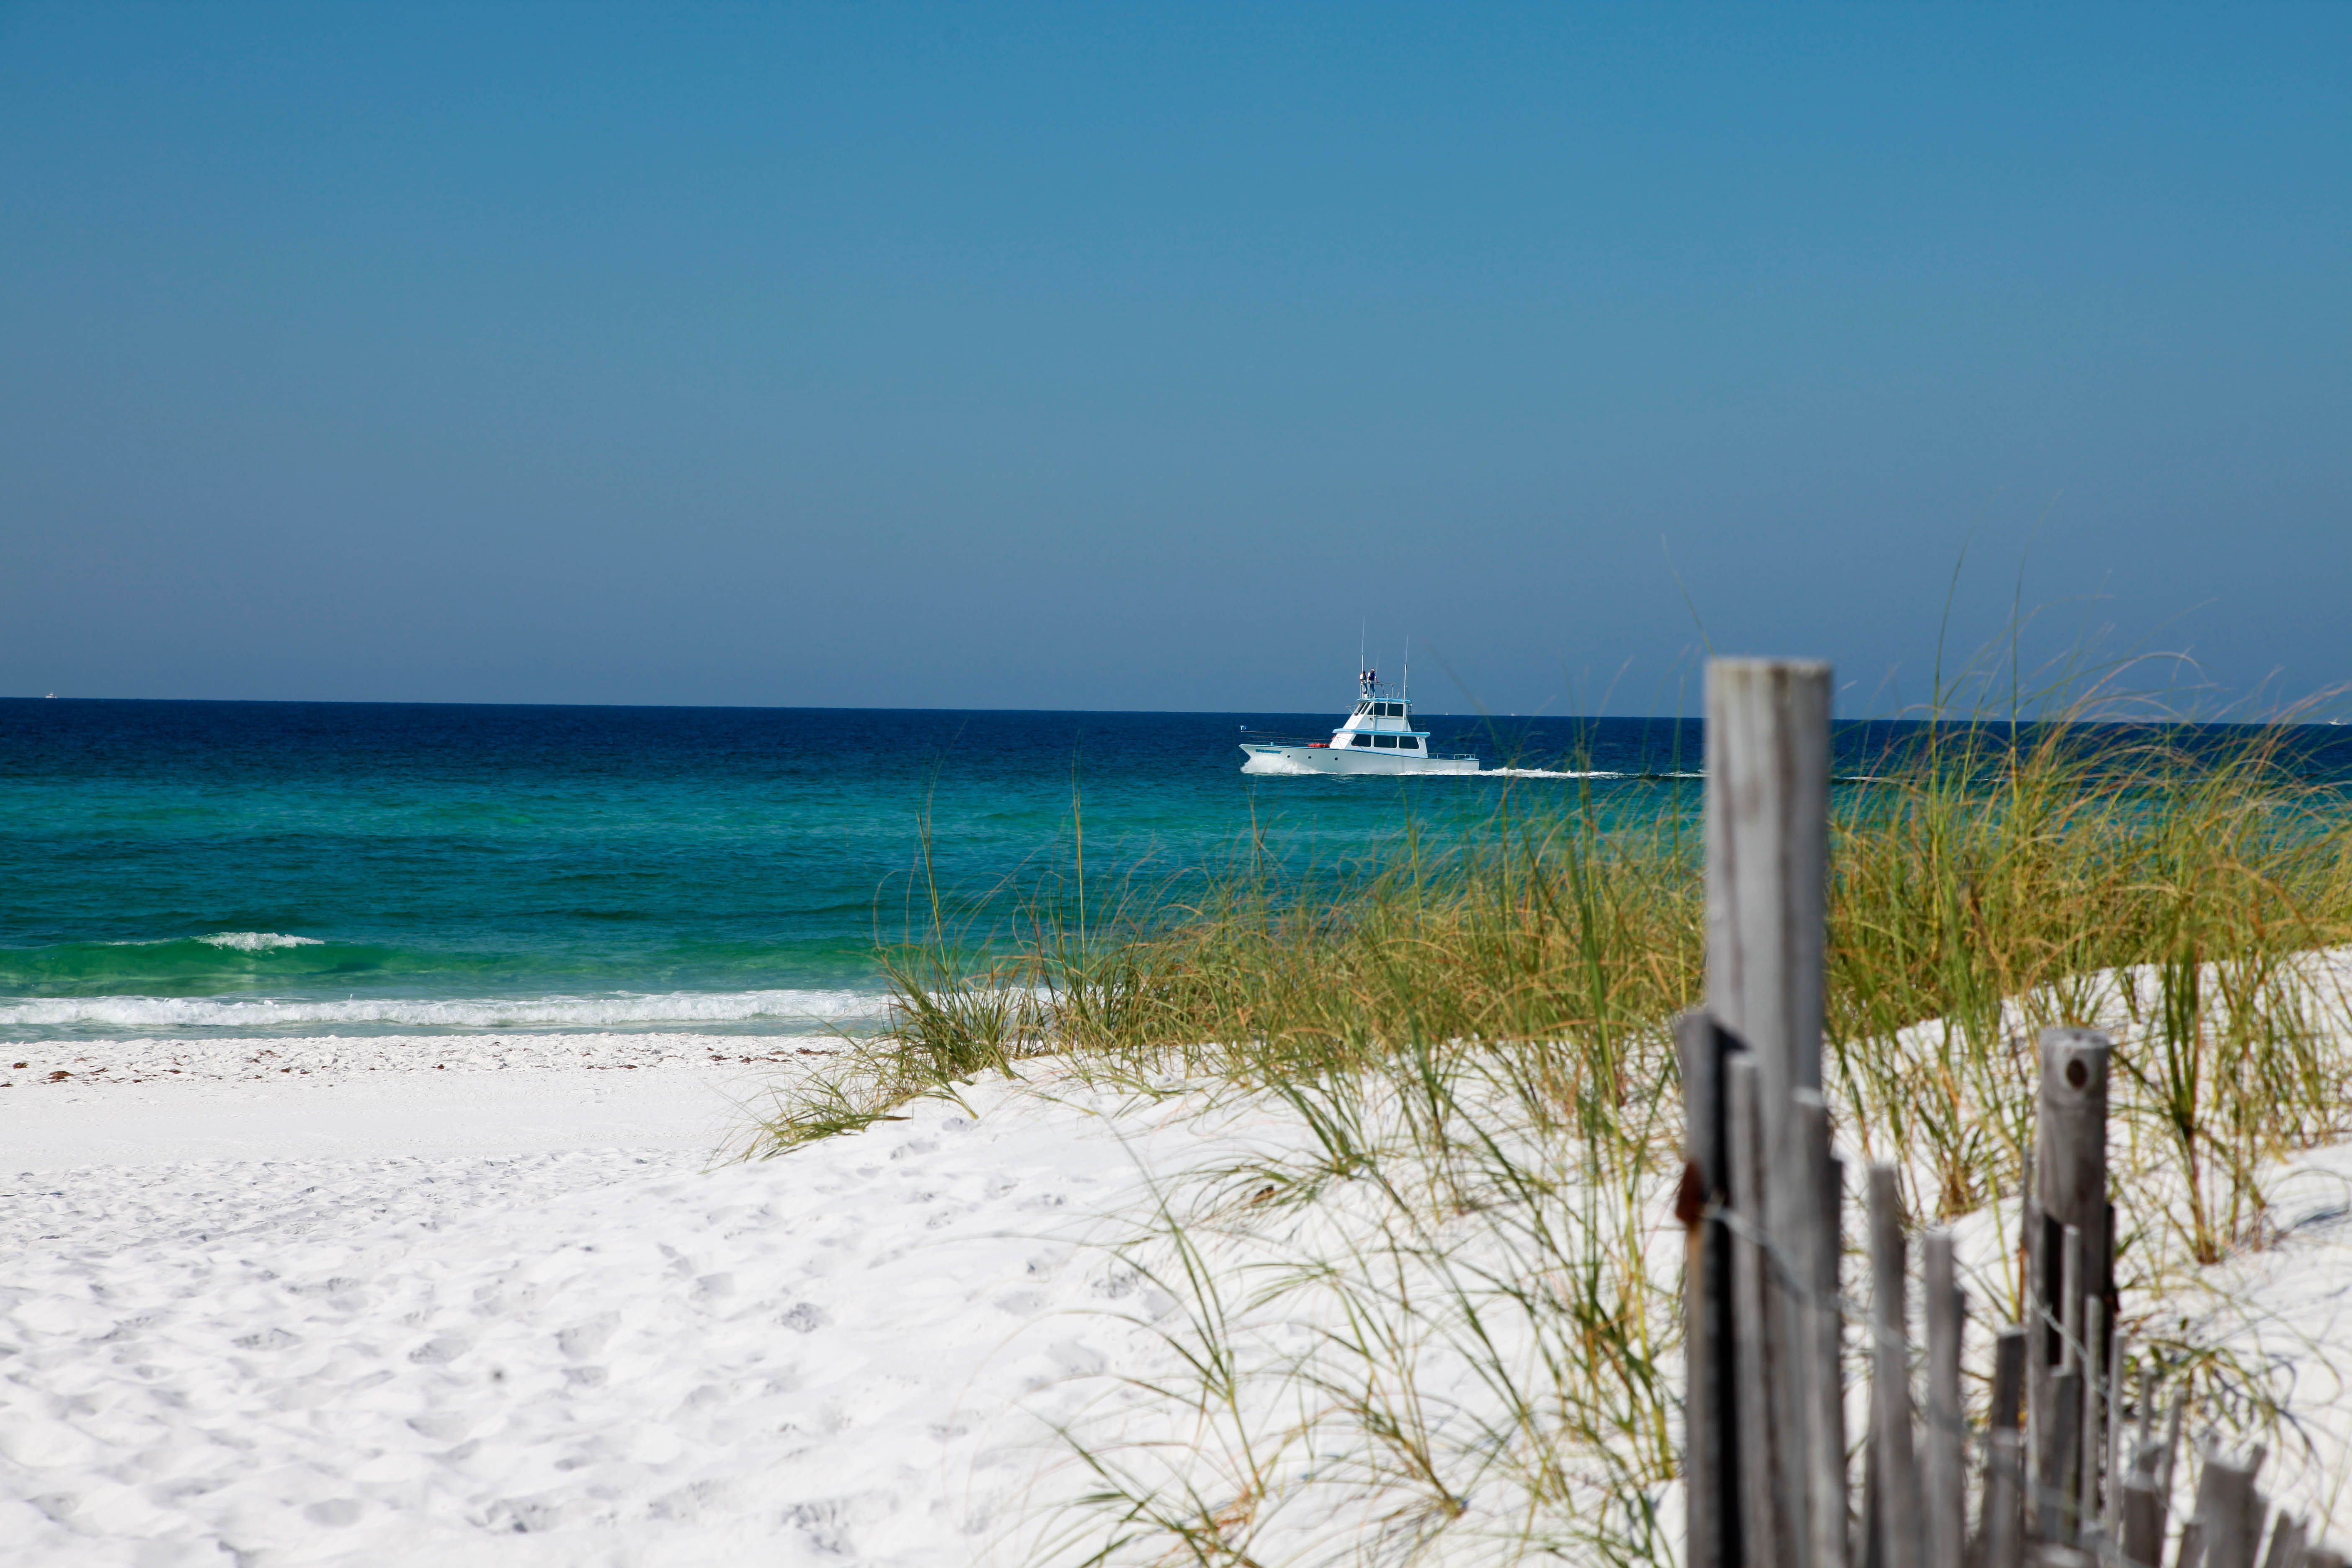 Destin Fl By Emerald Coast Vacation Als Photo Credit Joe Mayer Www Thedestinphotographer